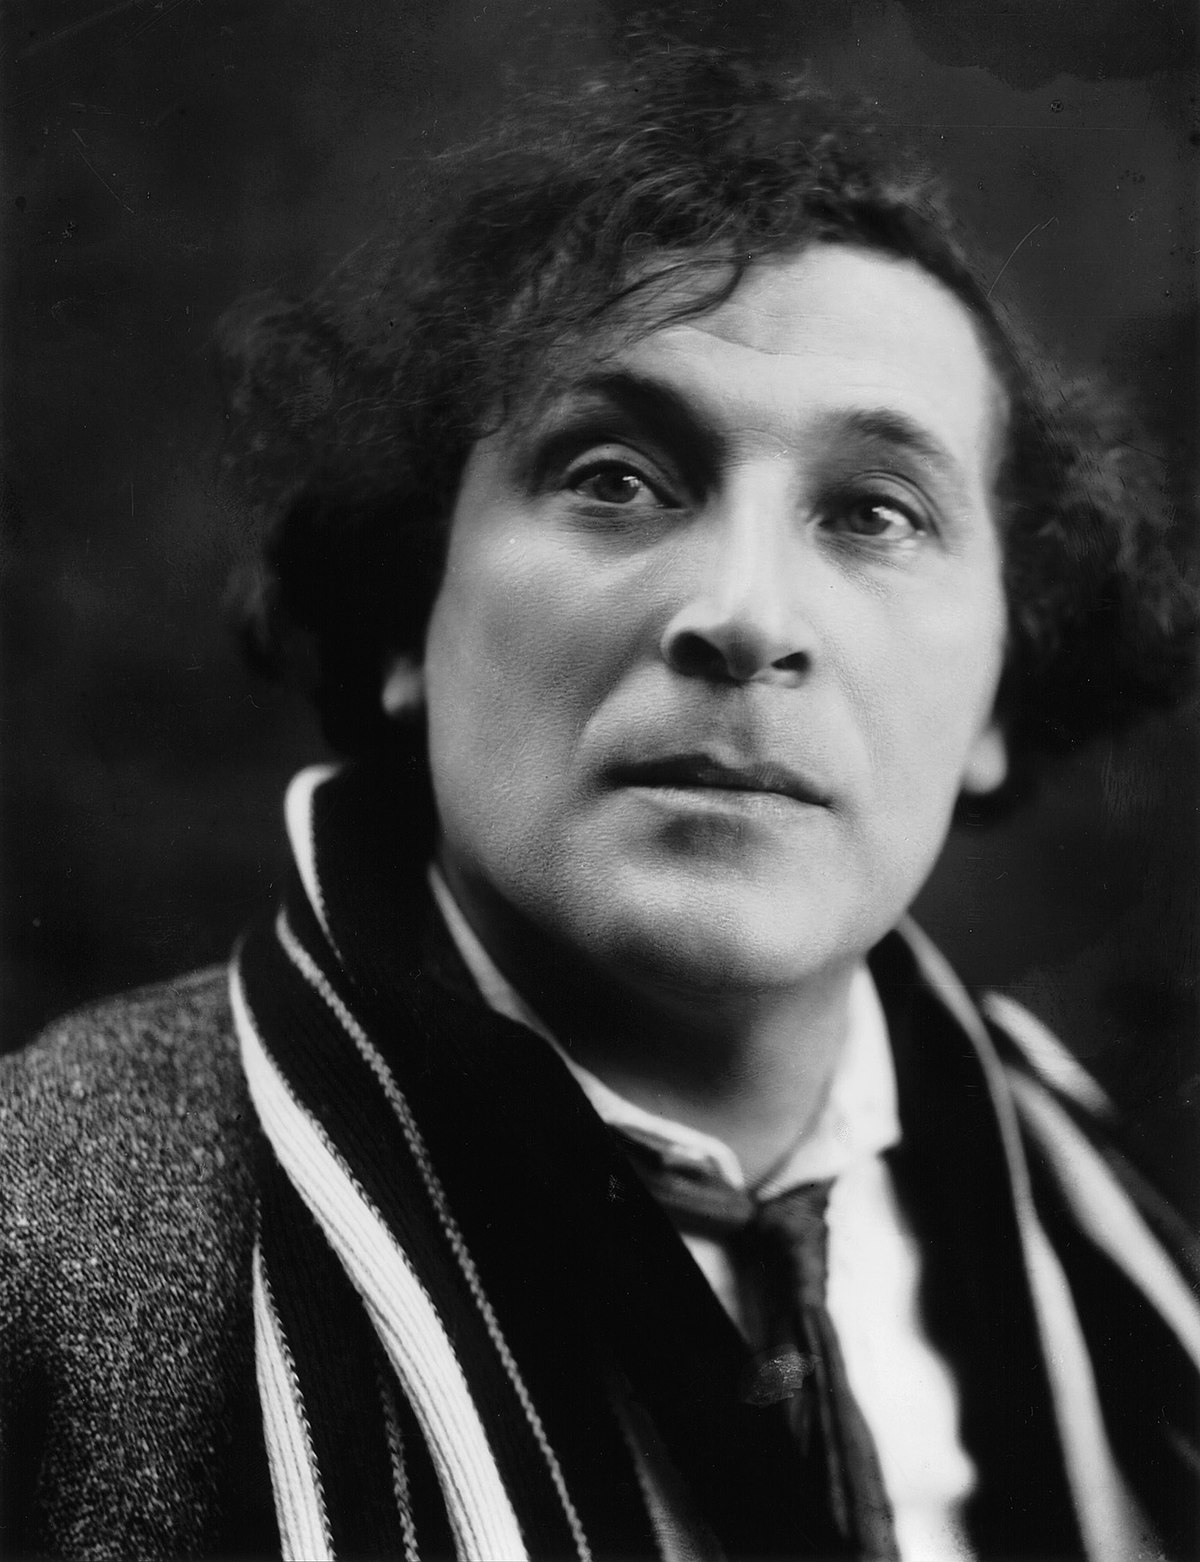 marc chagall in english : marc chagall wiki english :  marc chagall ulysse et les sirènes en 2020/2021